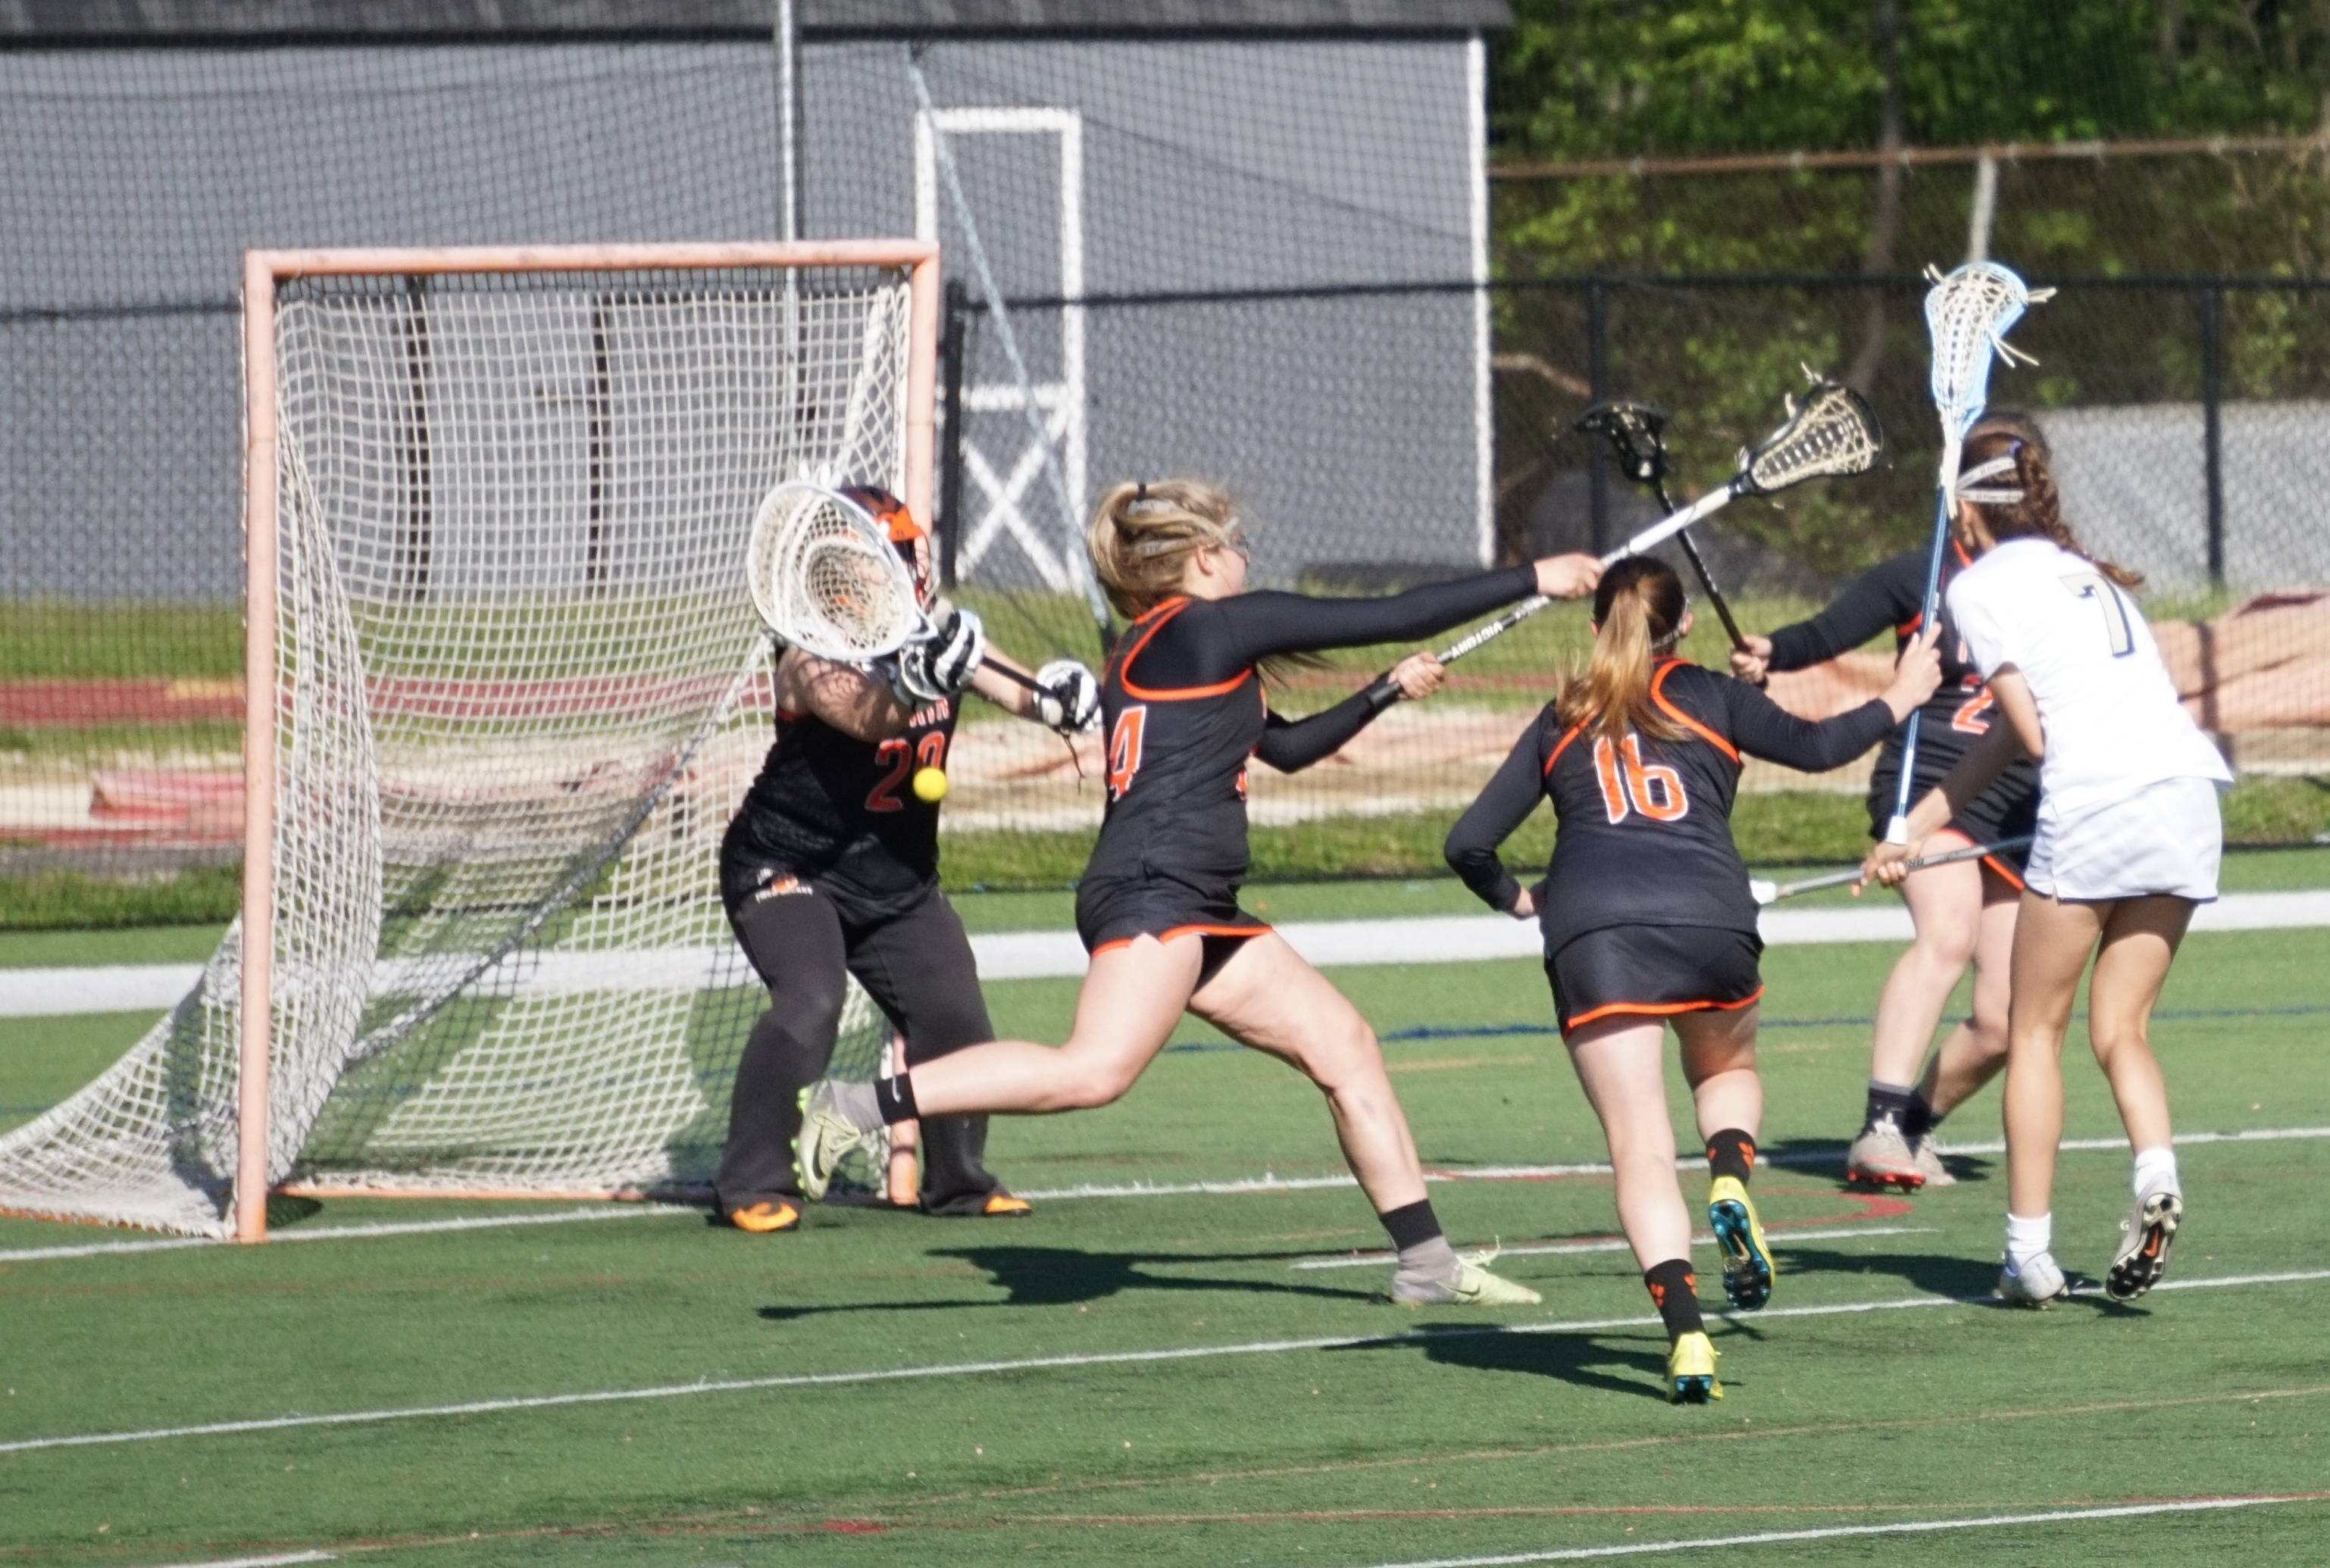 roxbury girls View the schedule, scores, league standings, roster and video highlights for the roxbury gaels girls lacrosse team on maxpreps.